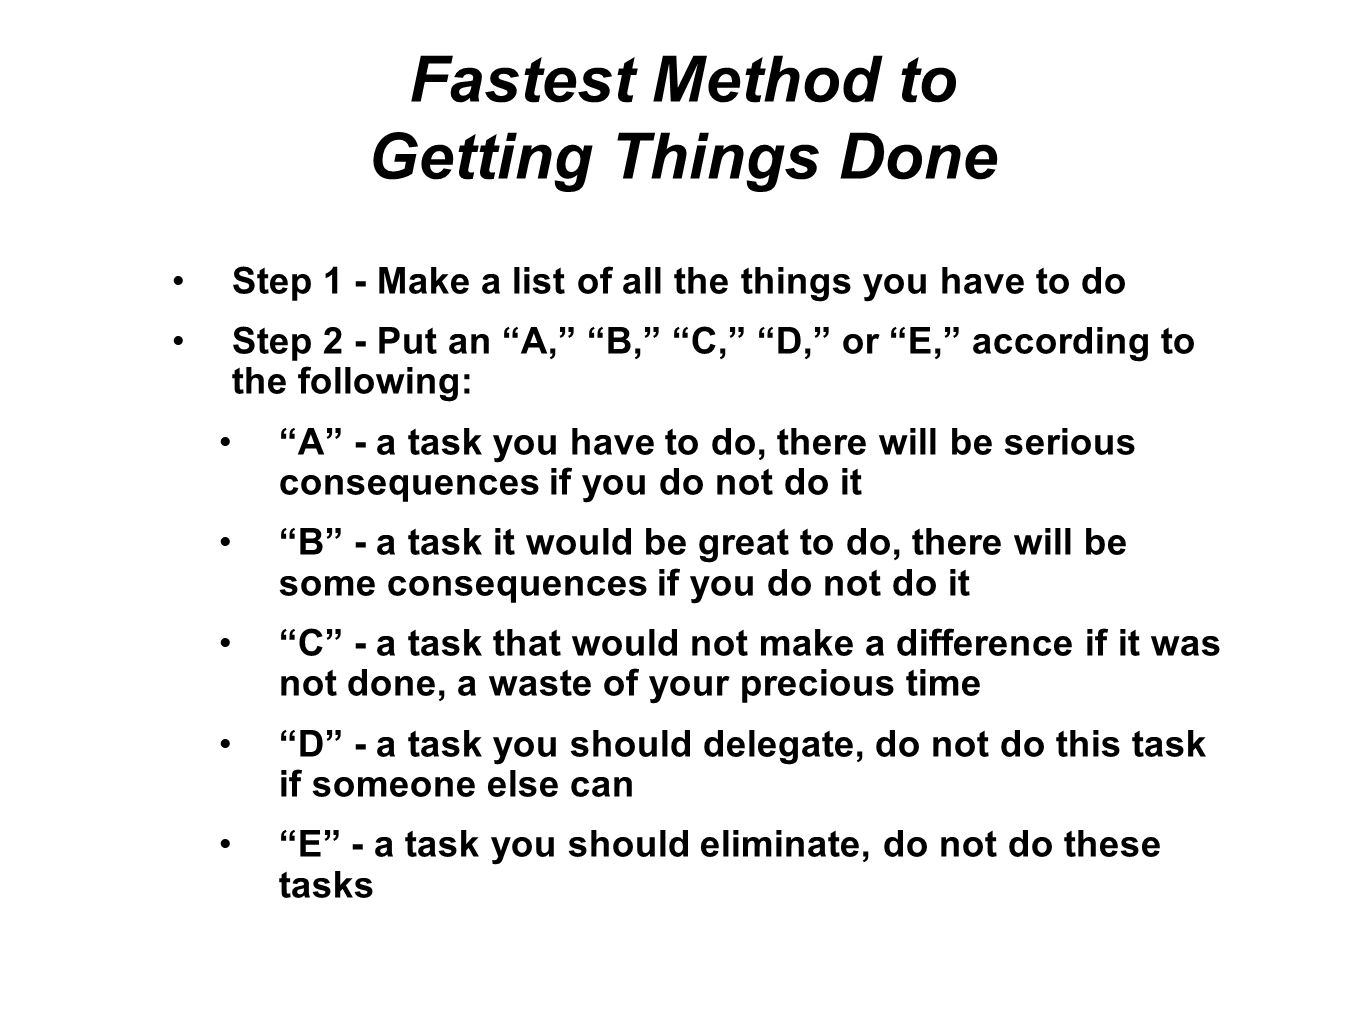 Fastest Method to Getting Things Done contd Step 3 - transfer all the As to another new list Step 4 - on the A list, put a 1 next to the most important task, put a 2 next to the next most important task and so on until all the tasks are labeled with numbers.